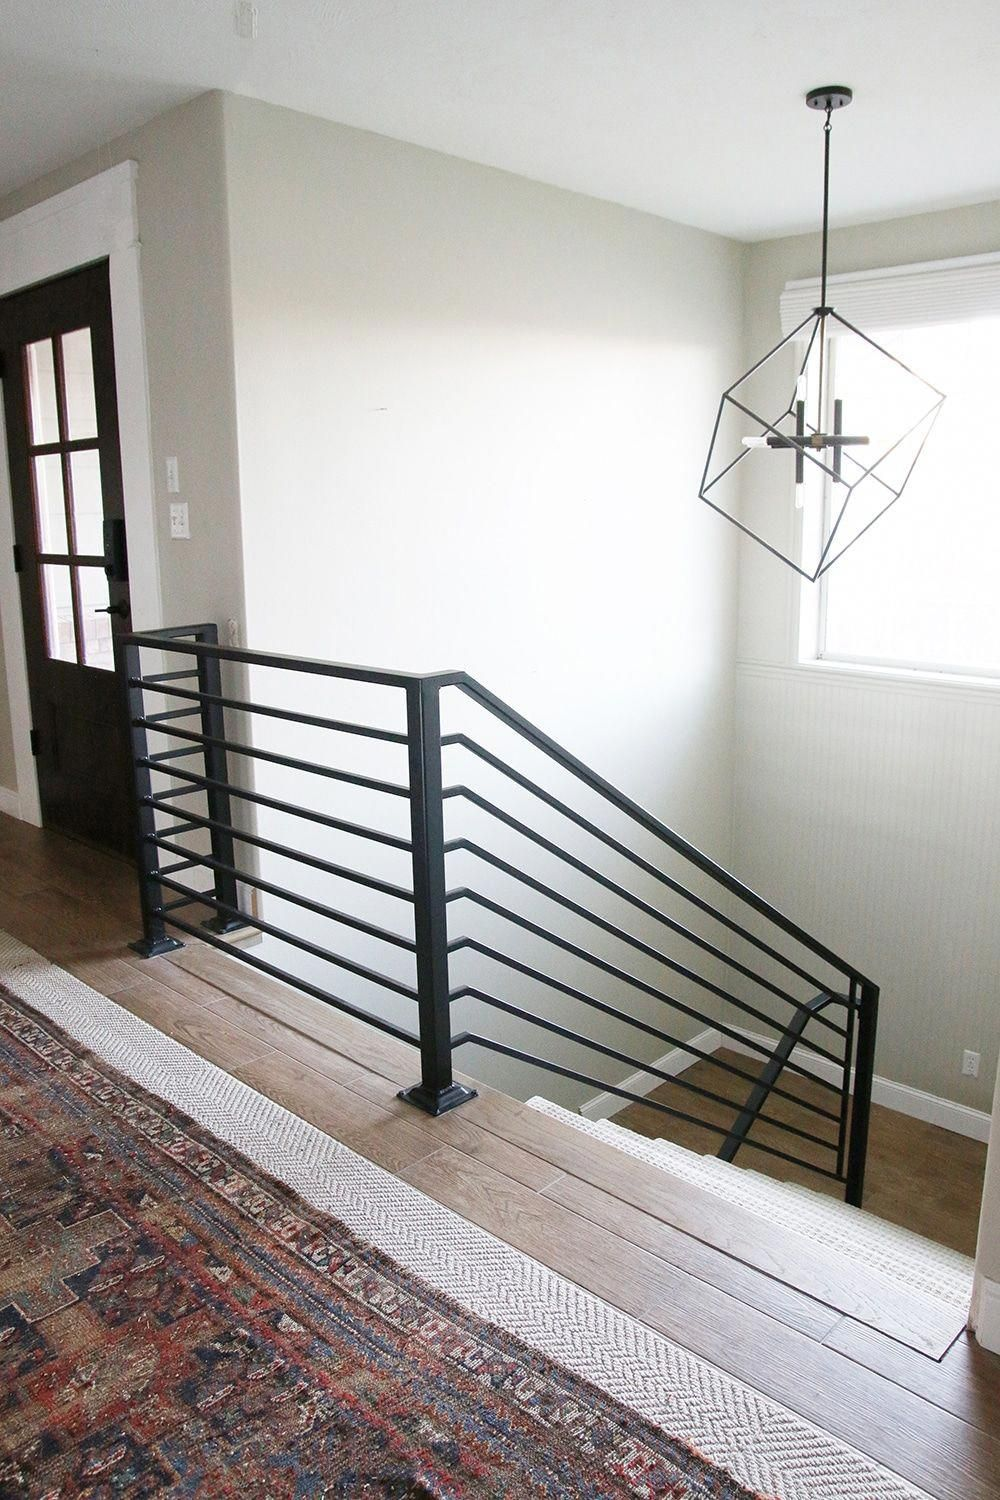 The Fabrication And Installation Of Stair Railing Only Cost Us 1500 It Changed Our Whole House Vibe